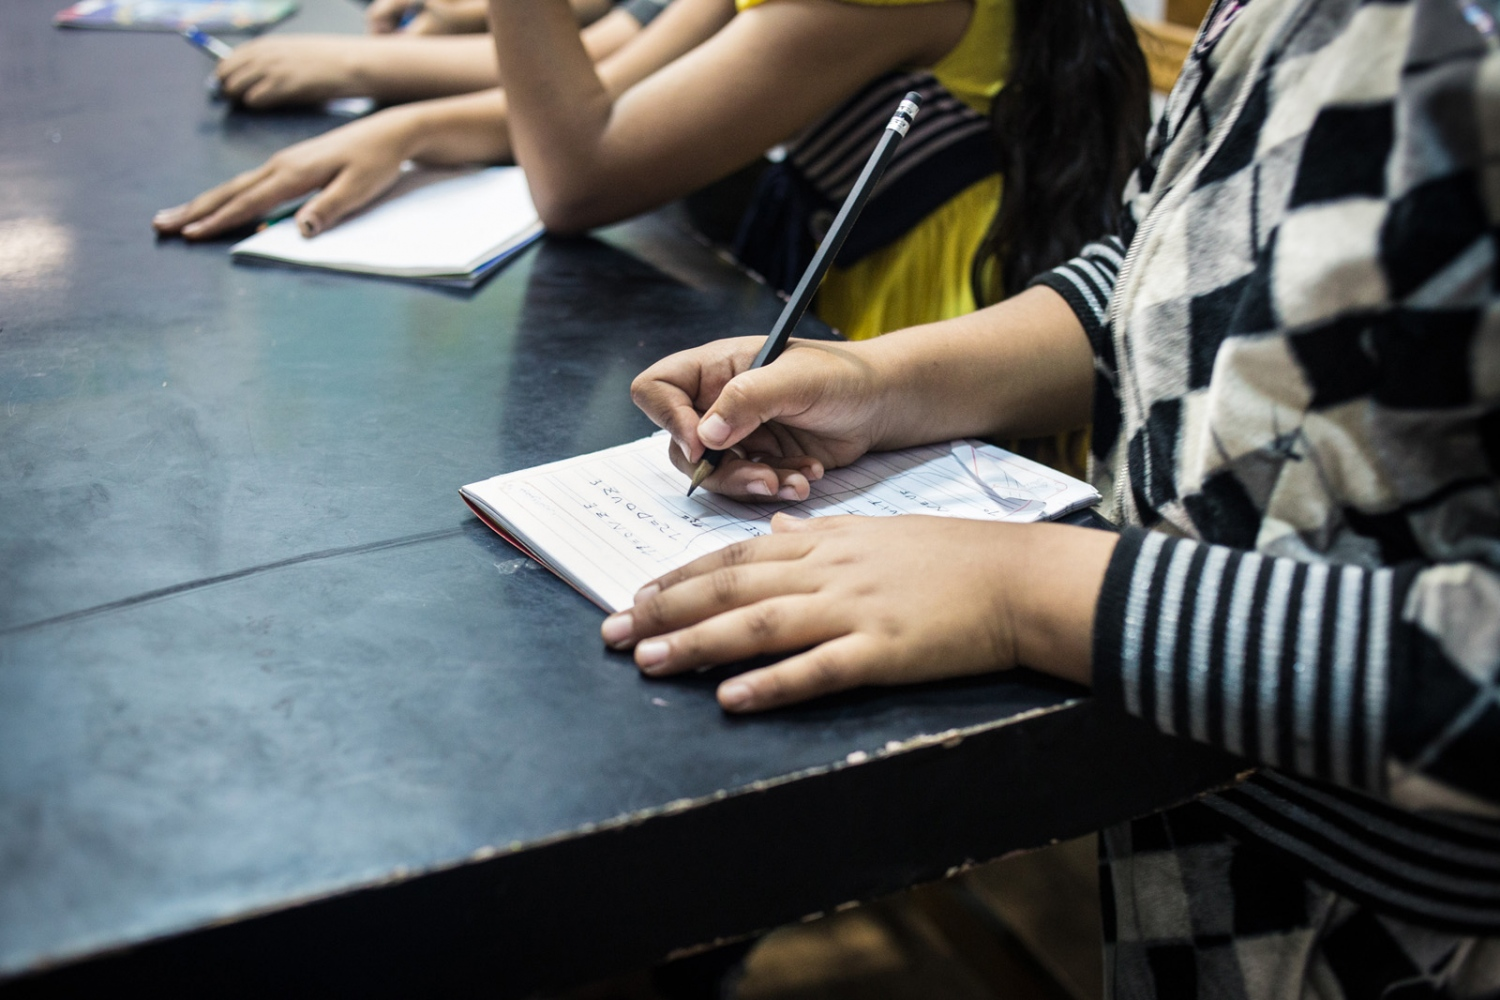 p.p1 {margin: 0.0px 0.0px 0.0px 0.0px; font: 10.0px 'Lucida Grande'} Noura copies down French numbers in her notebook during French class. Mish Madrasa is a grassroots volunteer group that provides tutoring and after school activities to poor children in Saft el Laban, a slum neighborhood of Cairo.